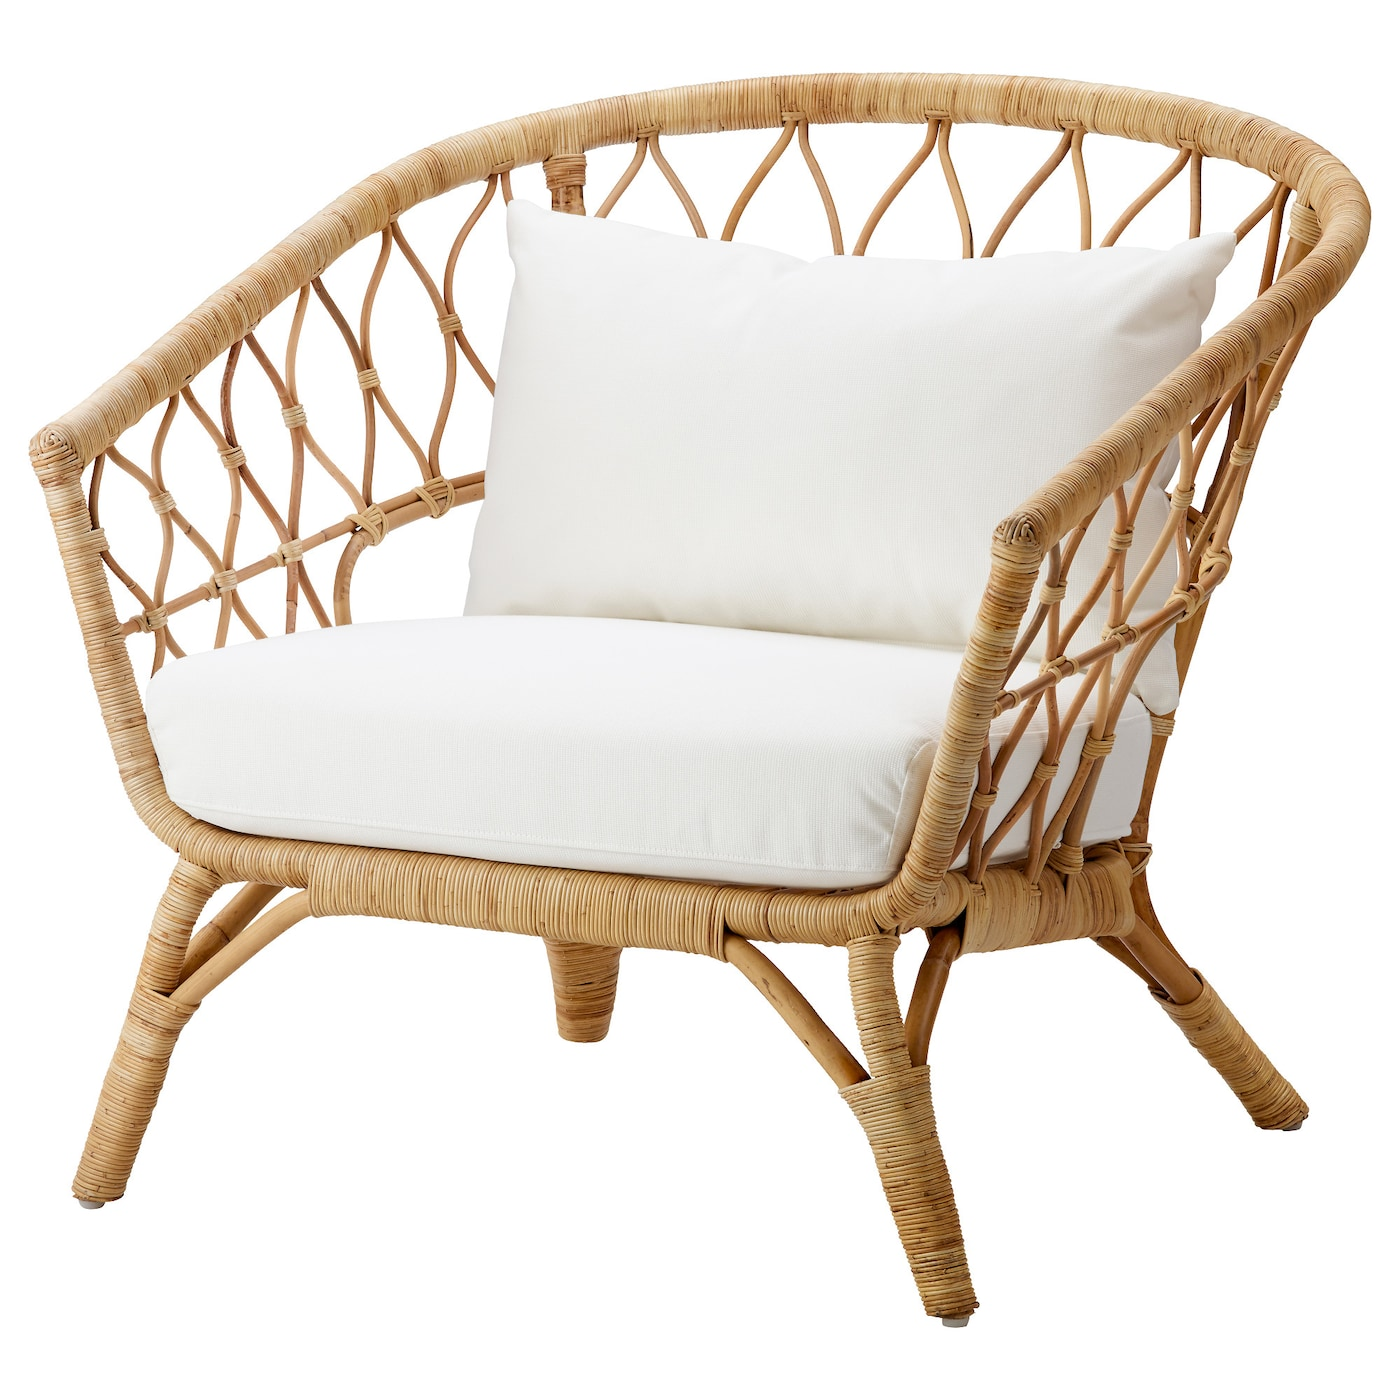 STOCKHOLM 2017 Armchair with cushion Rattan röst¥nga white IKEA